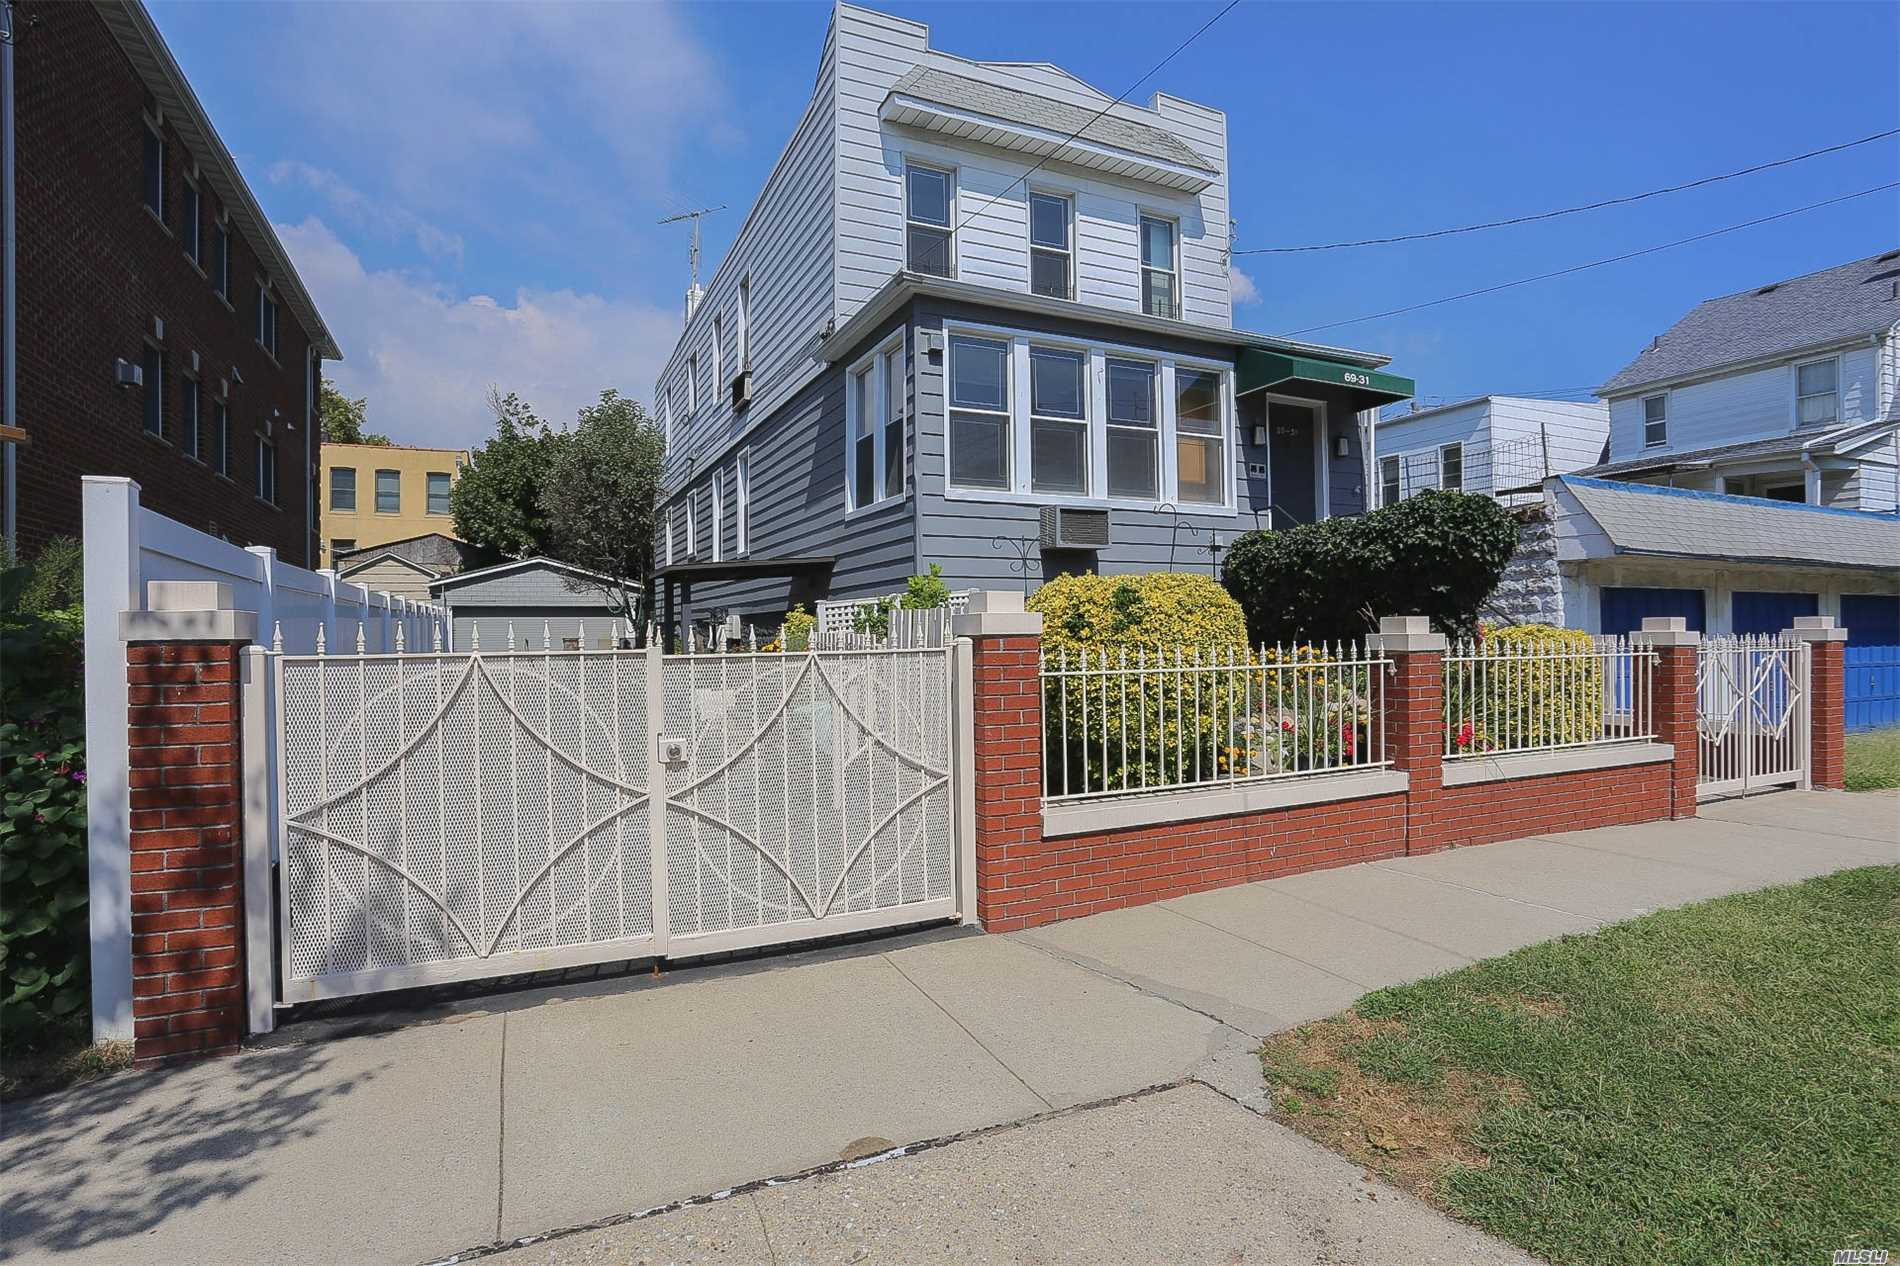 Fully Det 2 Fam Home Sitting On Over-Sized 40 X 100 Lot. Located On A Beautiful Block Right On The Border Of Maspeth/Middle Village. House Feat 2, 060 Sqft Of Living Space Along Wth A Full Finished Bsmnt (Wth Sep Entrance), Det 2 Car Garage, Pvt Backyard, Pvt 4 Car Driveway. 2nd Flr Feat 2 Bdrms, Large Eat-In-Kitchen, Full Bth, Spacious Living Rm Wth Alcove. 1st Flr Feat 2 Bdrms, One Wall Kitchen, Full Bth, Large Bonus Rm, Spacious Living Room, And Enclosed Porch.